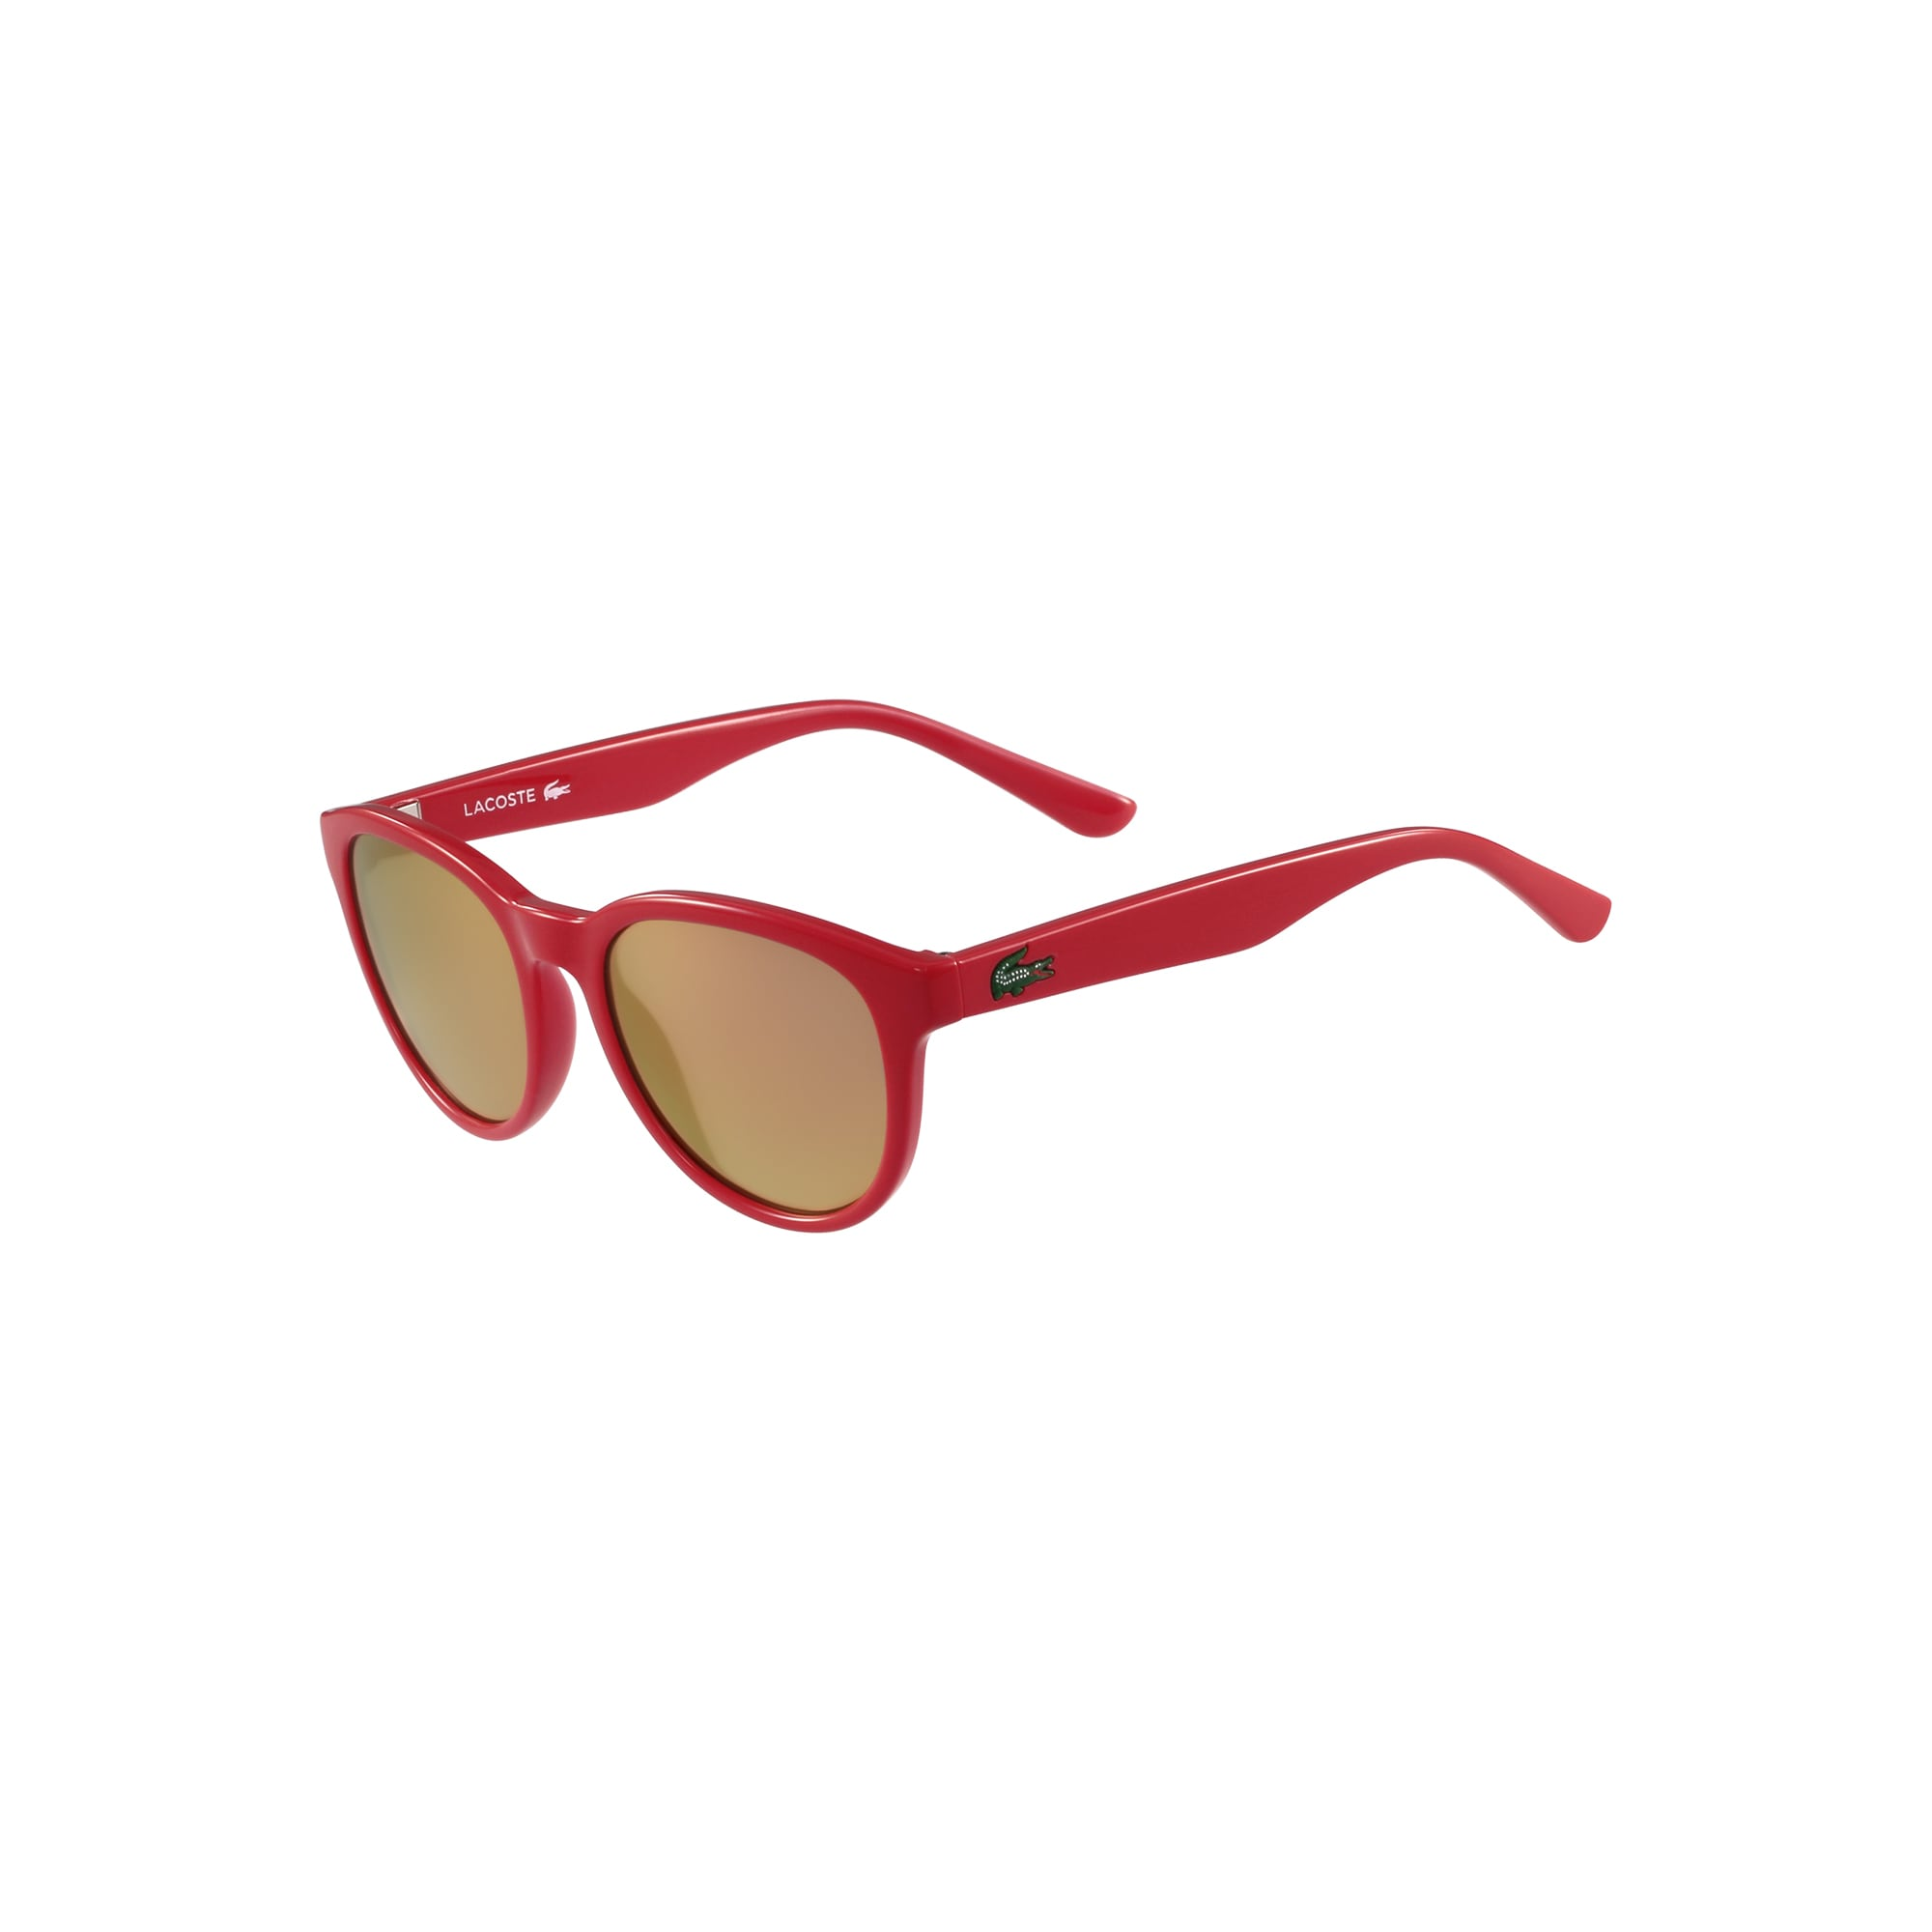 Men's L.12.12 T(w)eens Sunglasses